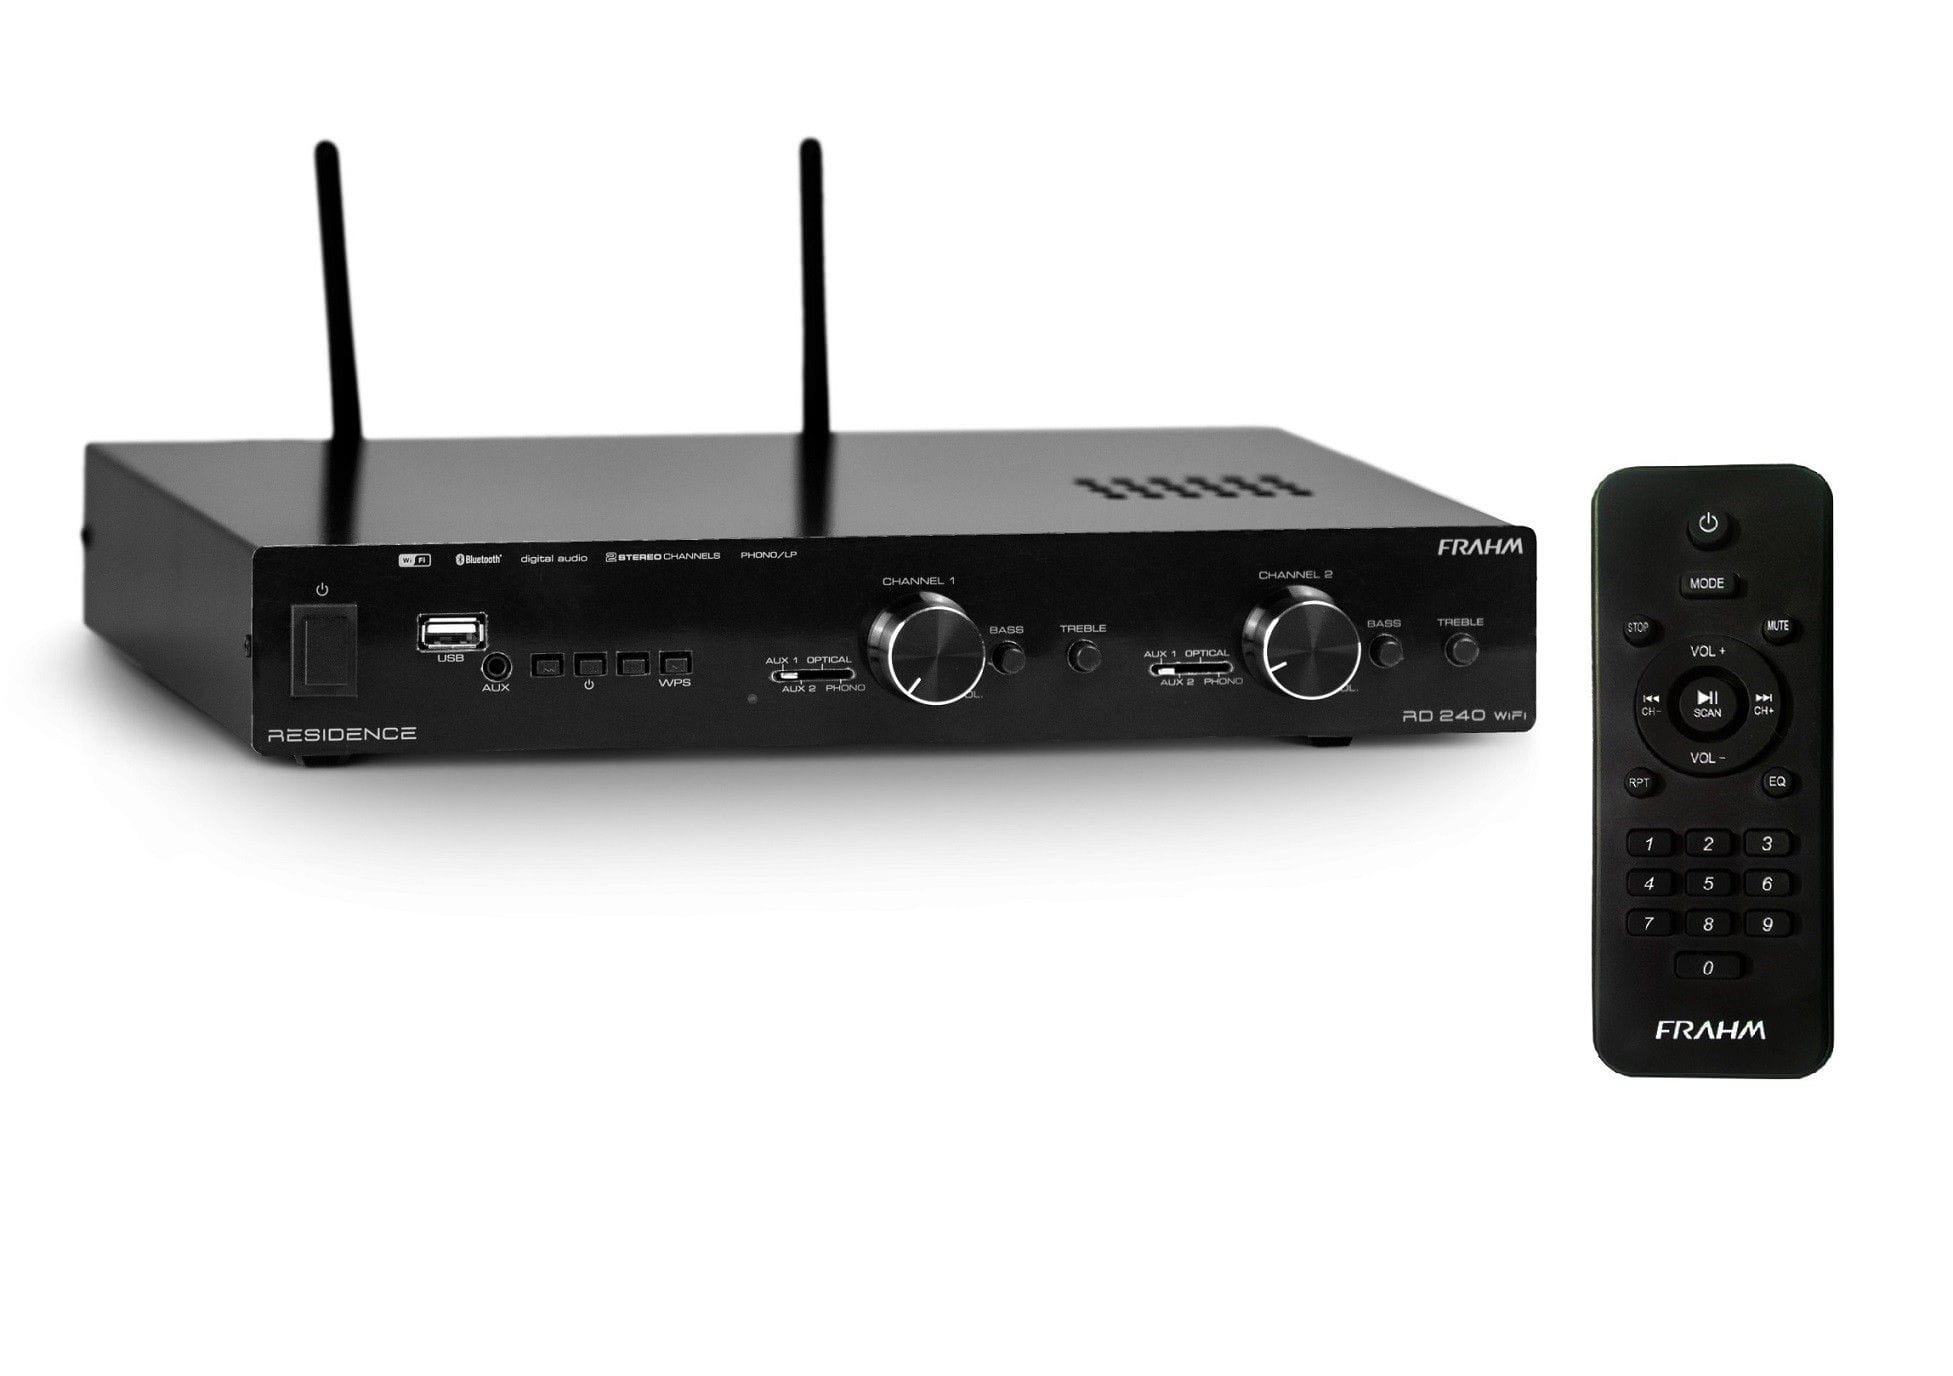 Amplificador Receiver Som Ambiente RD240 Wifi Residence 240W - FRAHM